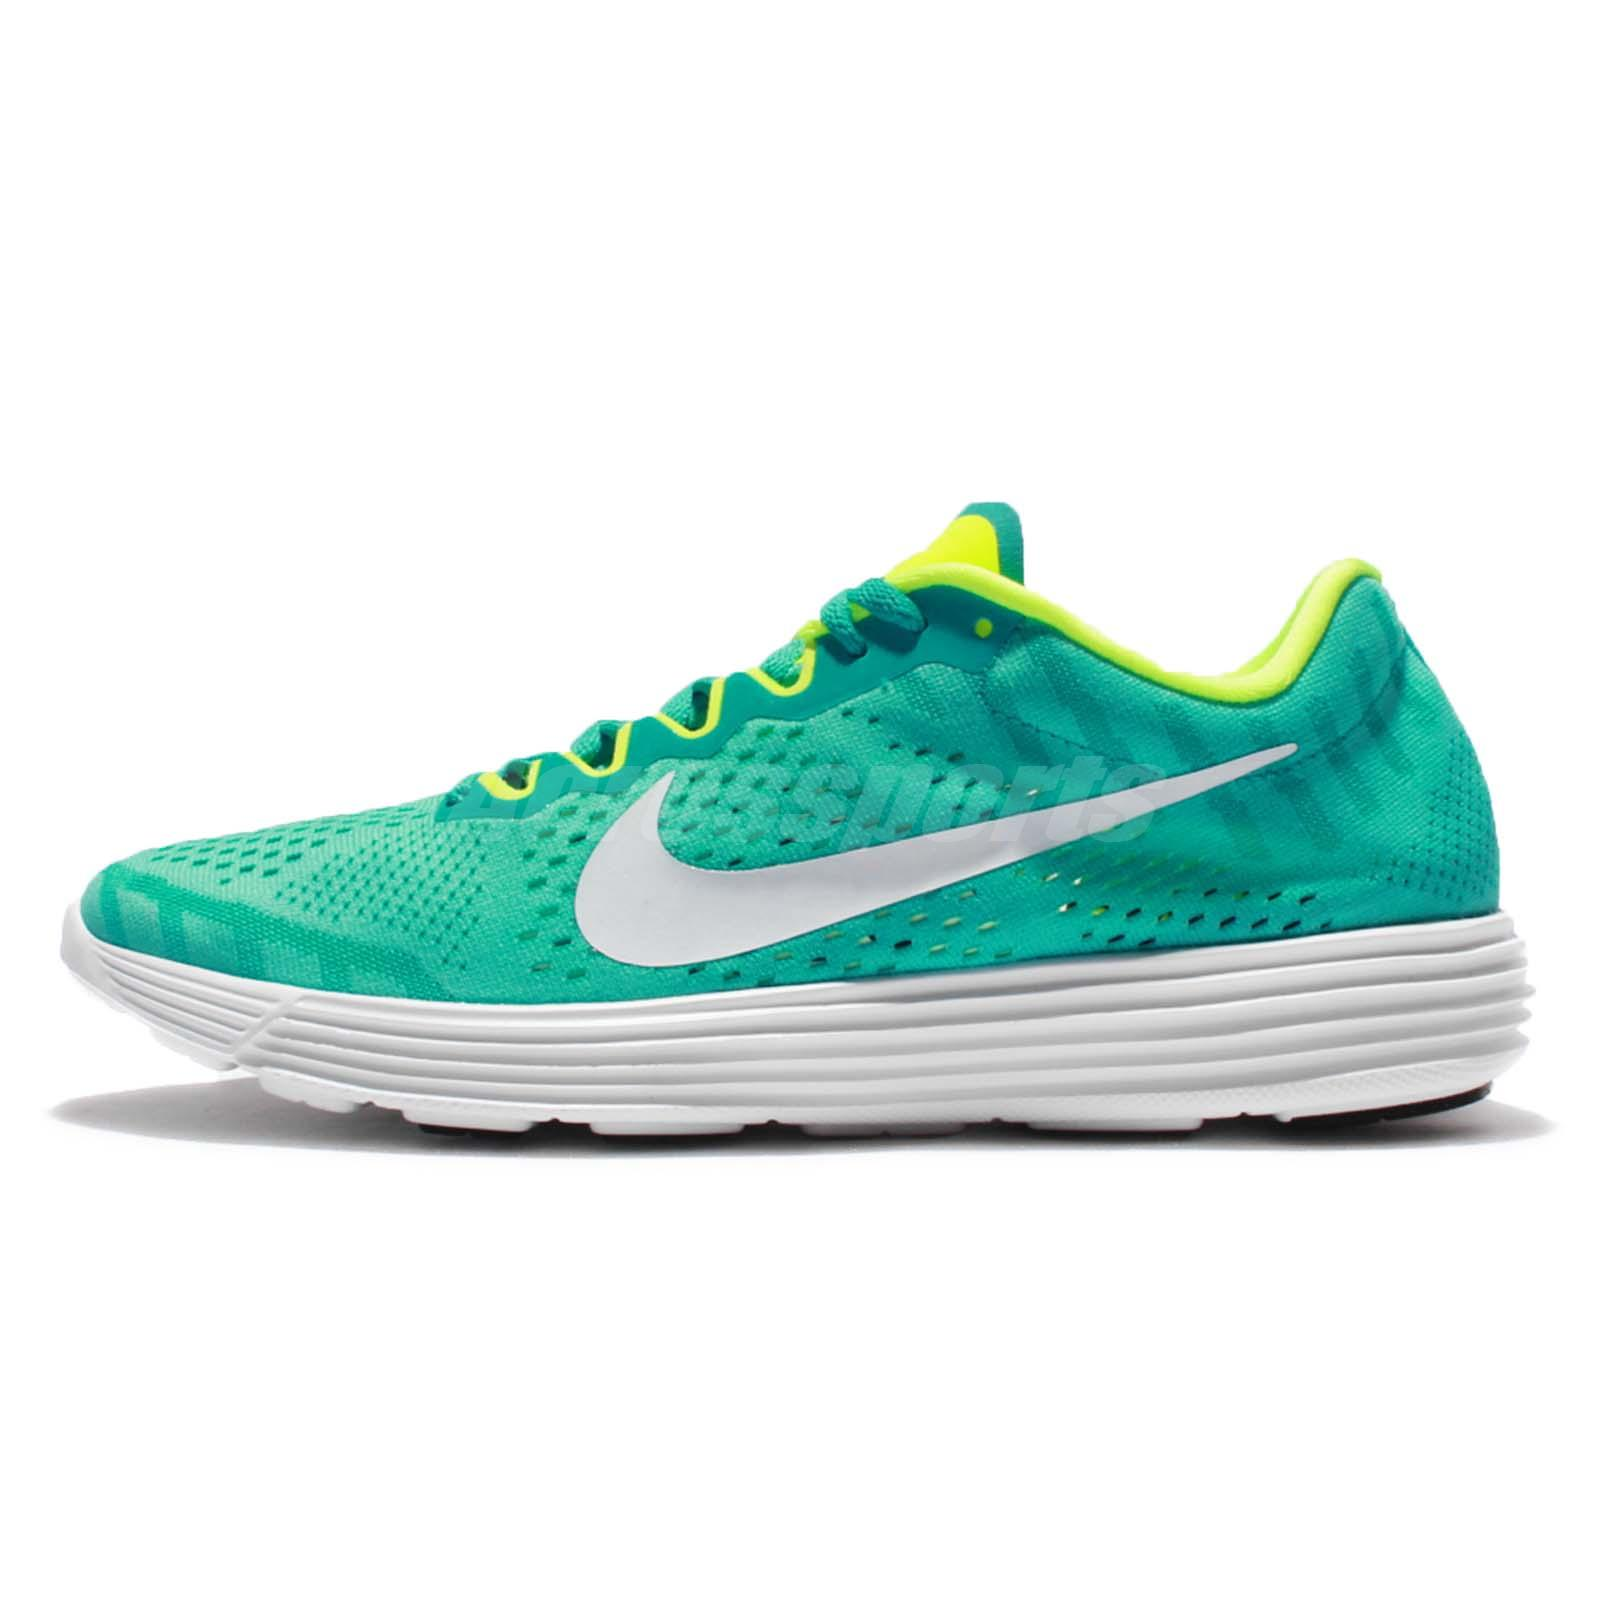 Nike Lunaracer 4 IV Mens Running Shoes Sneakers Trainers ...